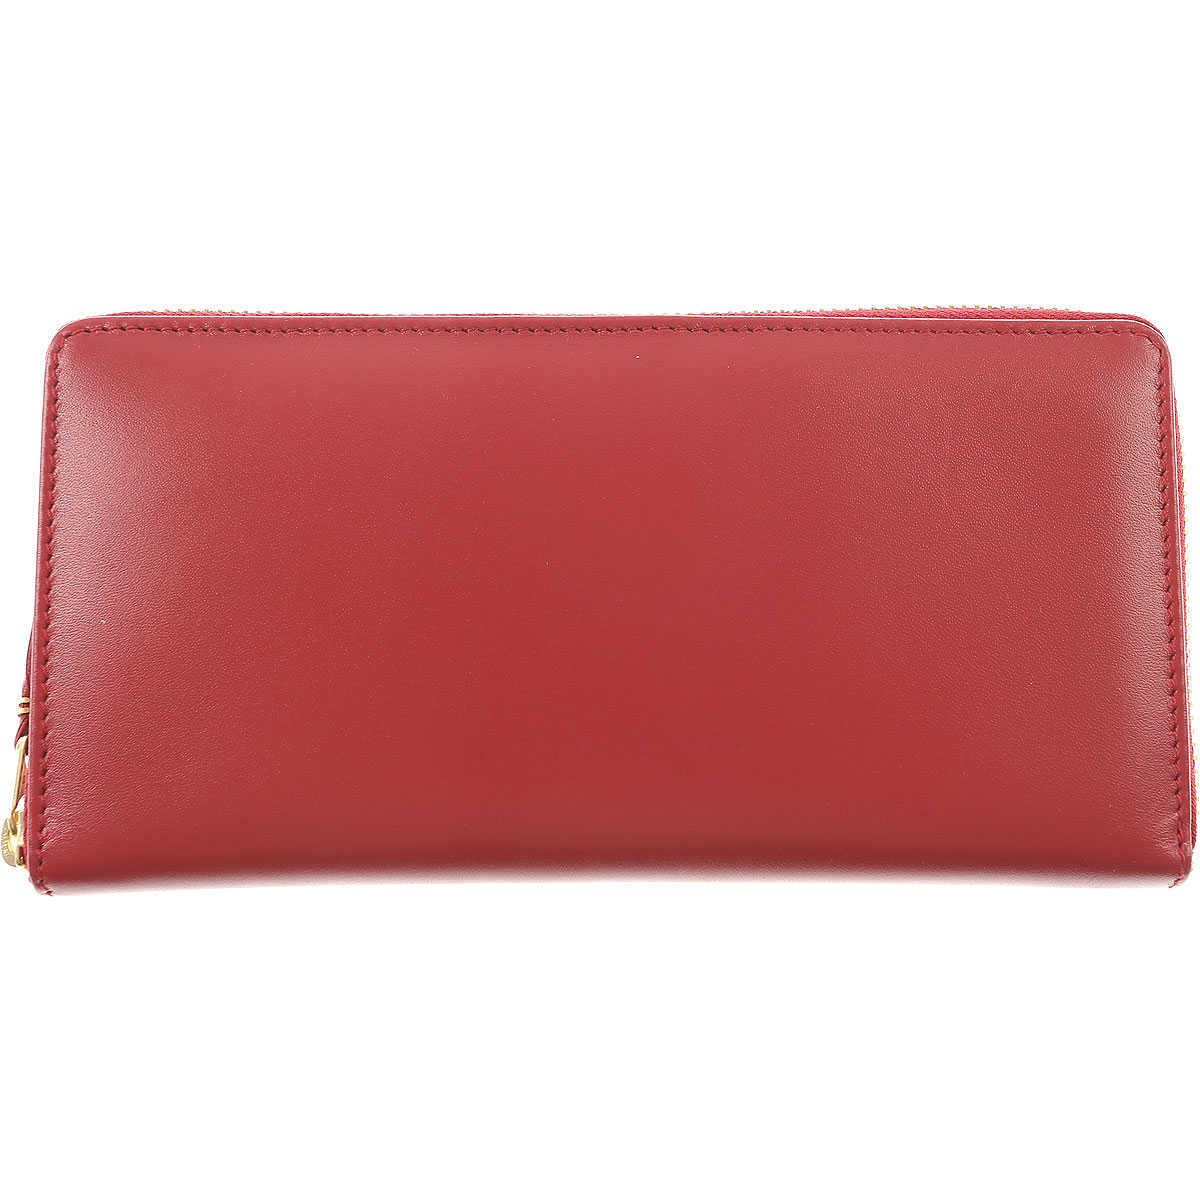 Comme des Garcons Wallet for Women Red Canada - GOOFASH - Womens WALLETS